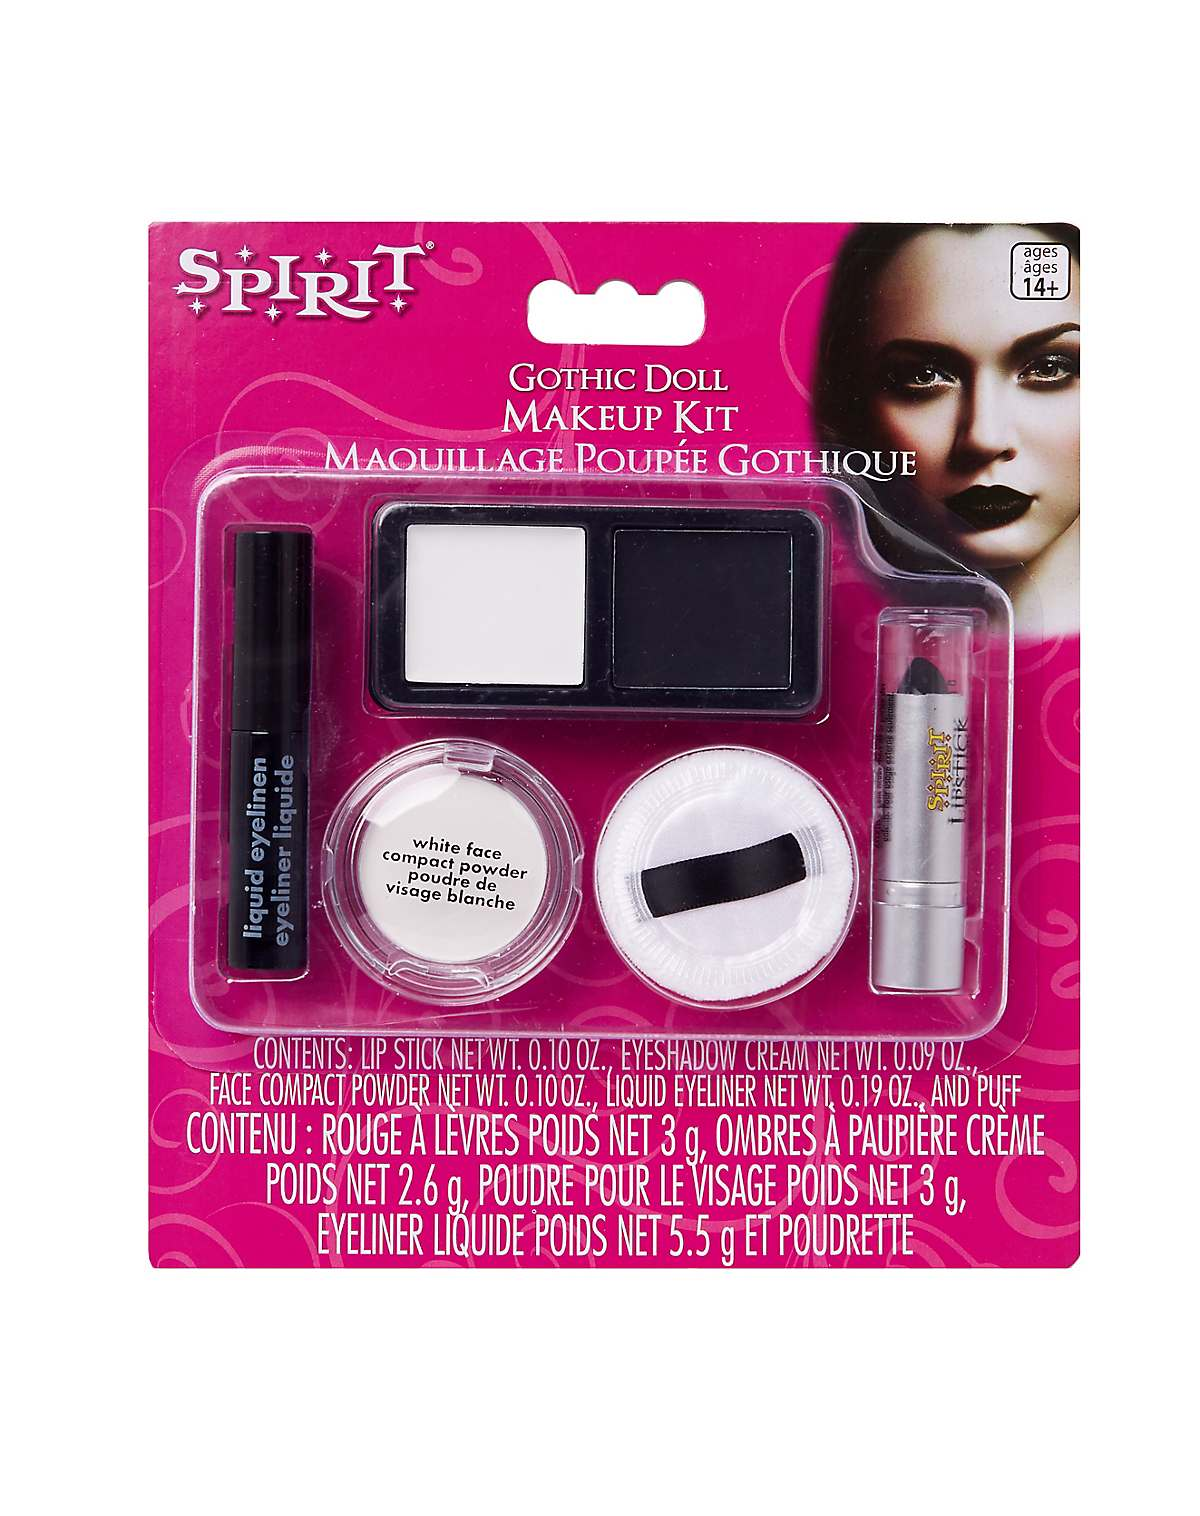 Gothic doll makeup character kit